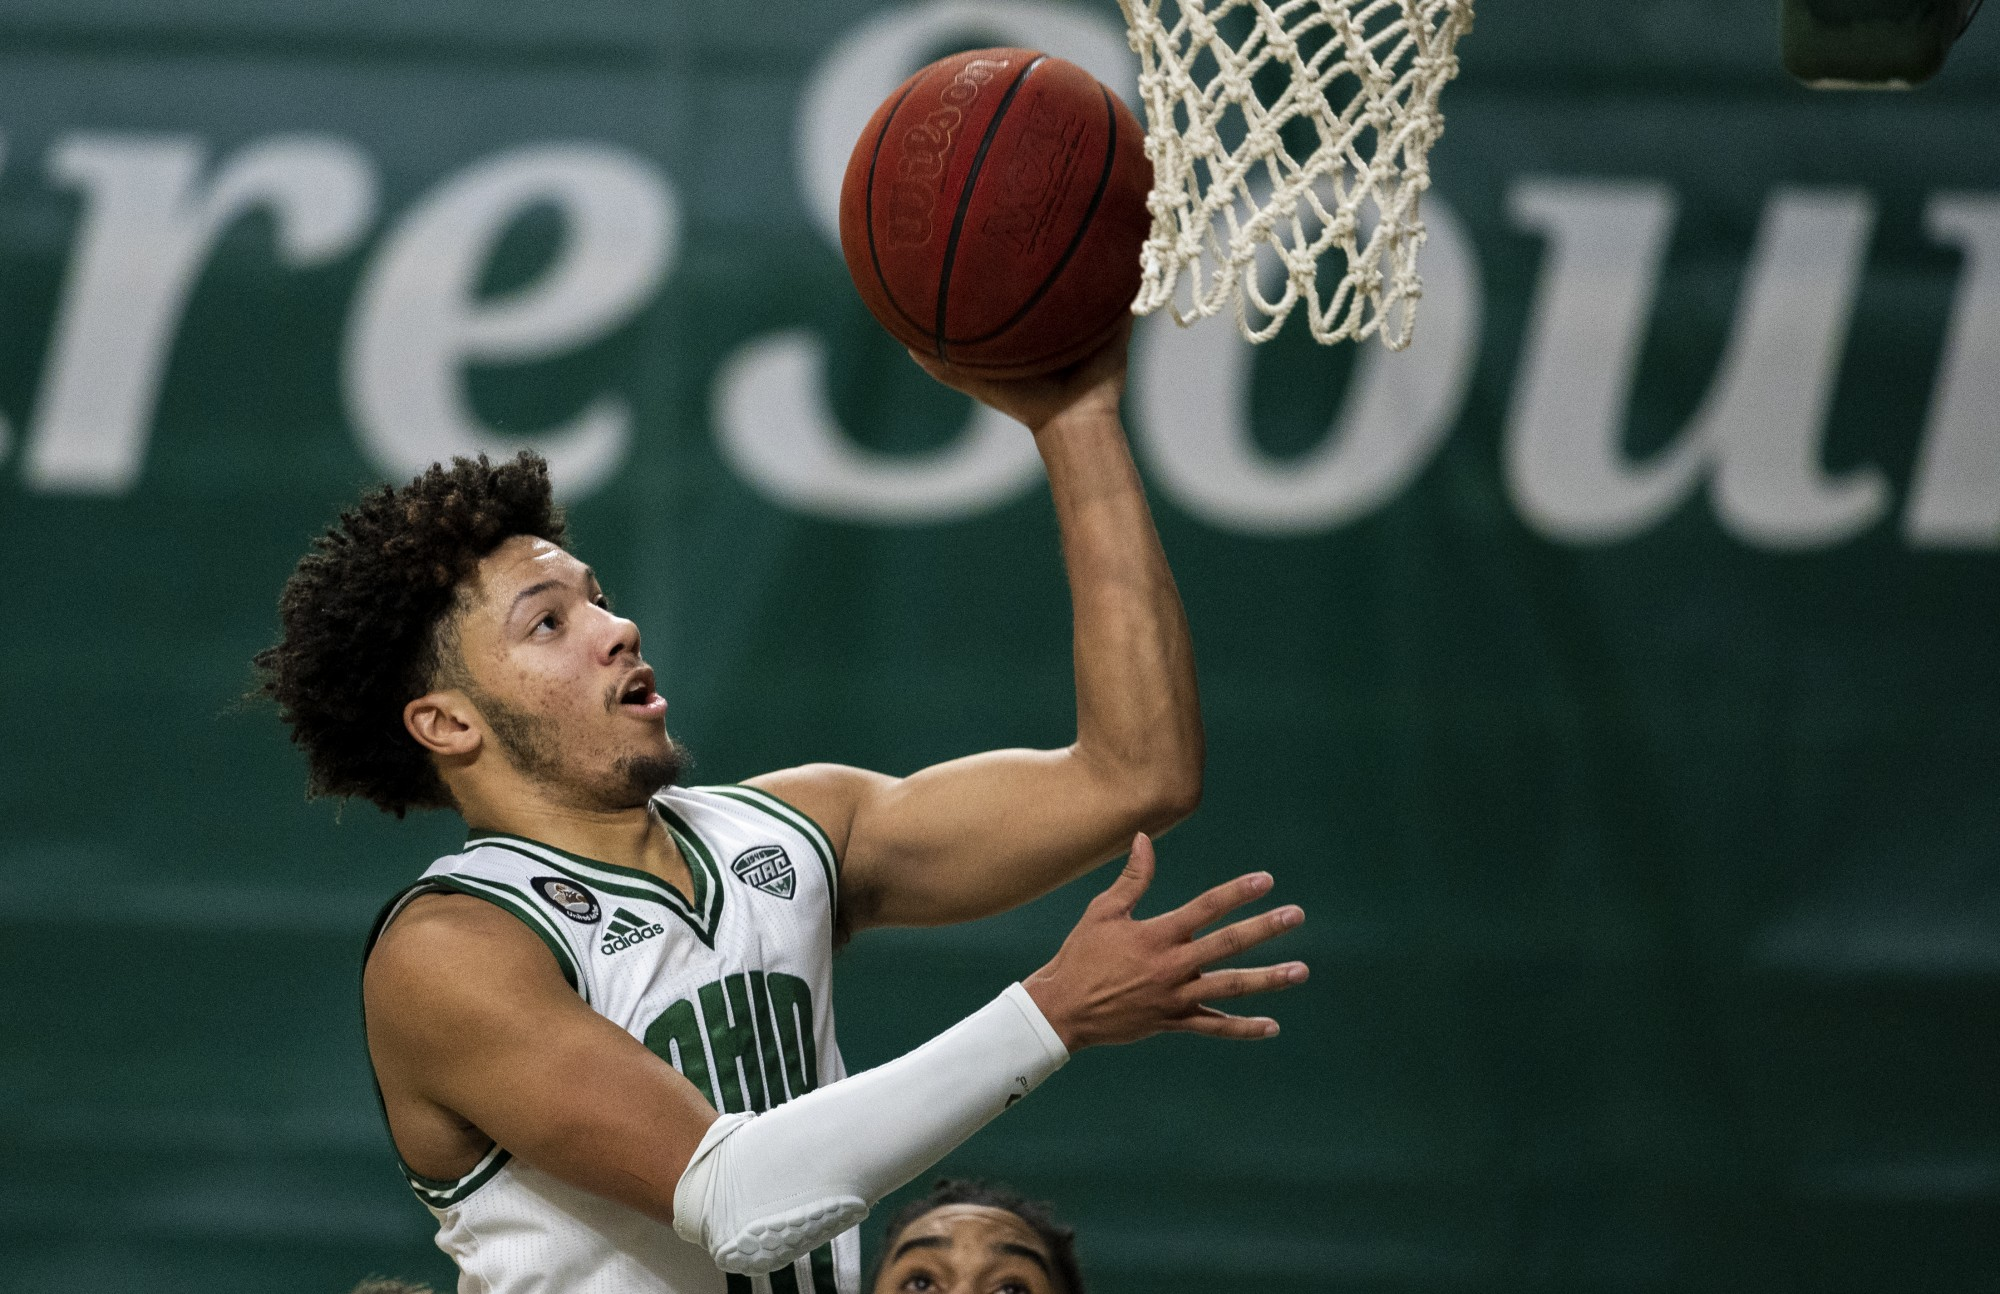 Ohio University's Mark Sears (10), lays the ball in the basket after a fast break during the home game against Western Michigan University on Jan. 26, 2021 in Athens, Ohio.